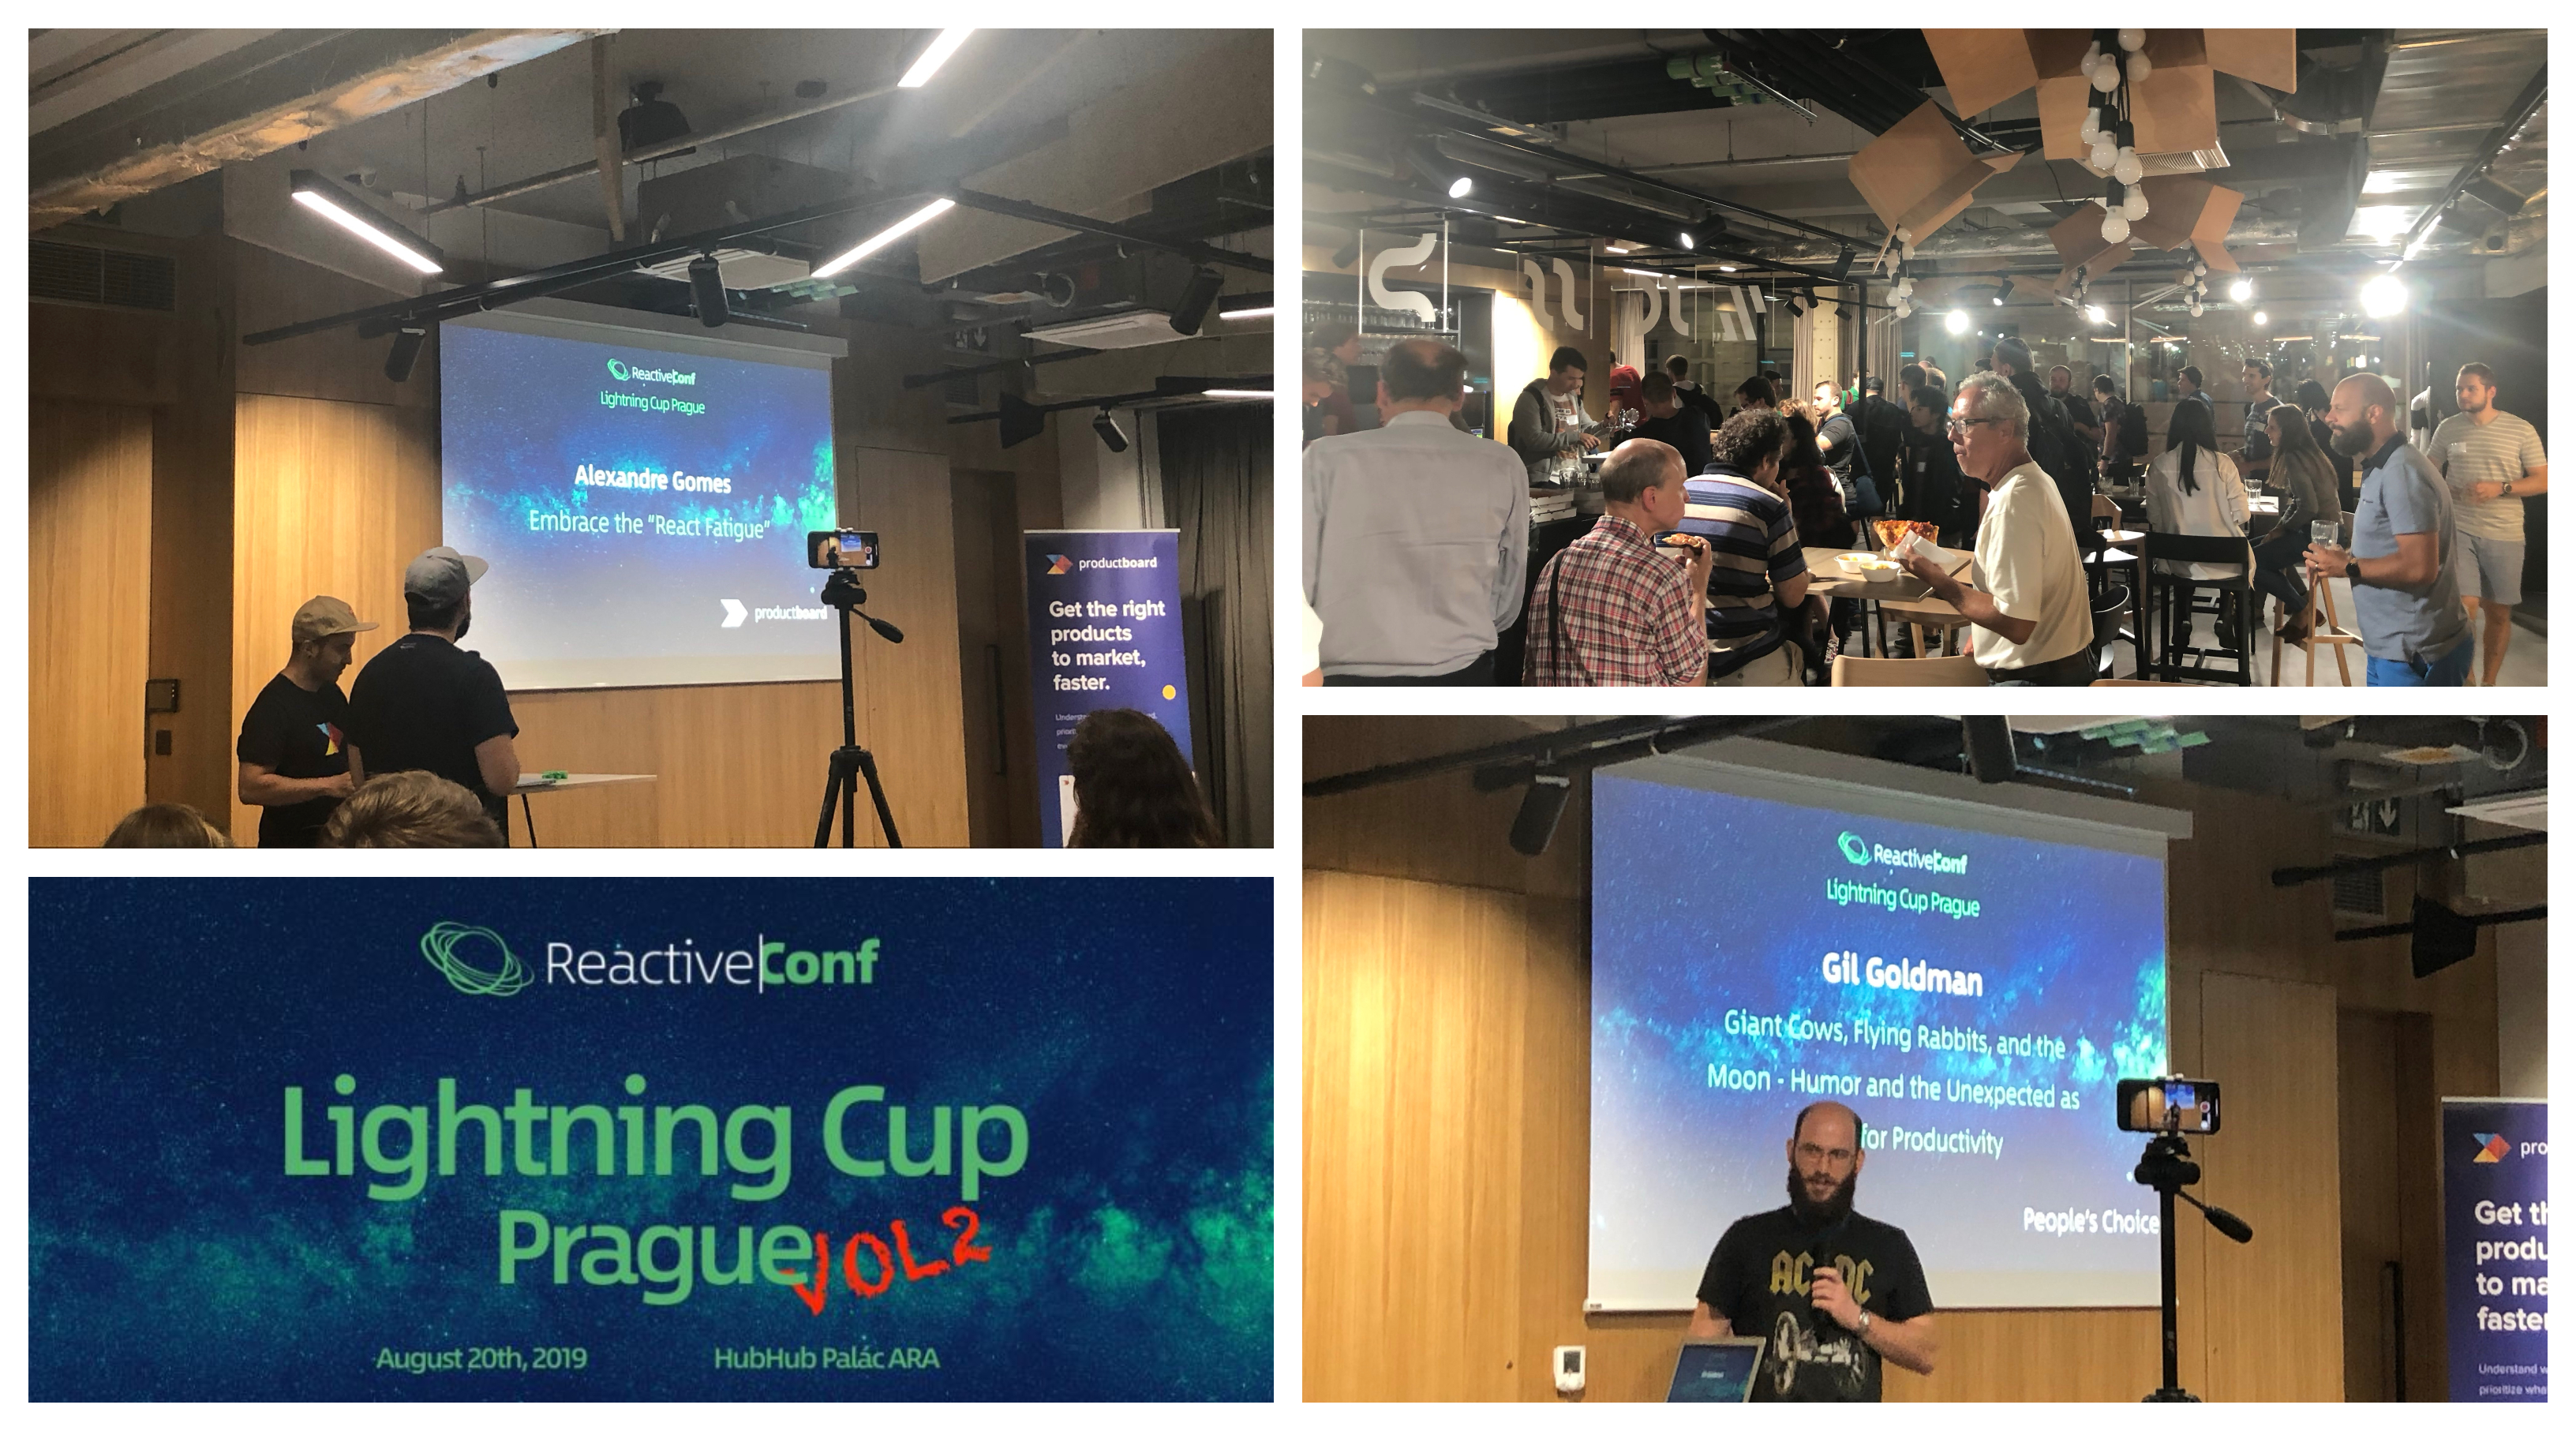 Lightning Cup Prague's speakers speaking publicly to developers